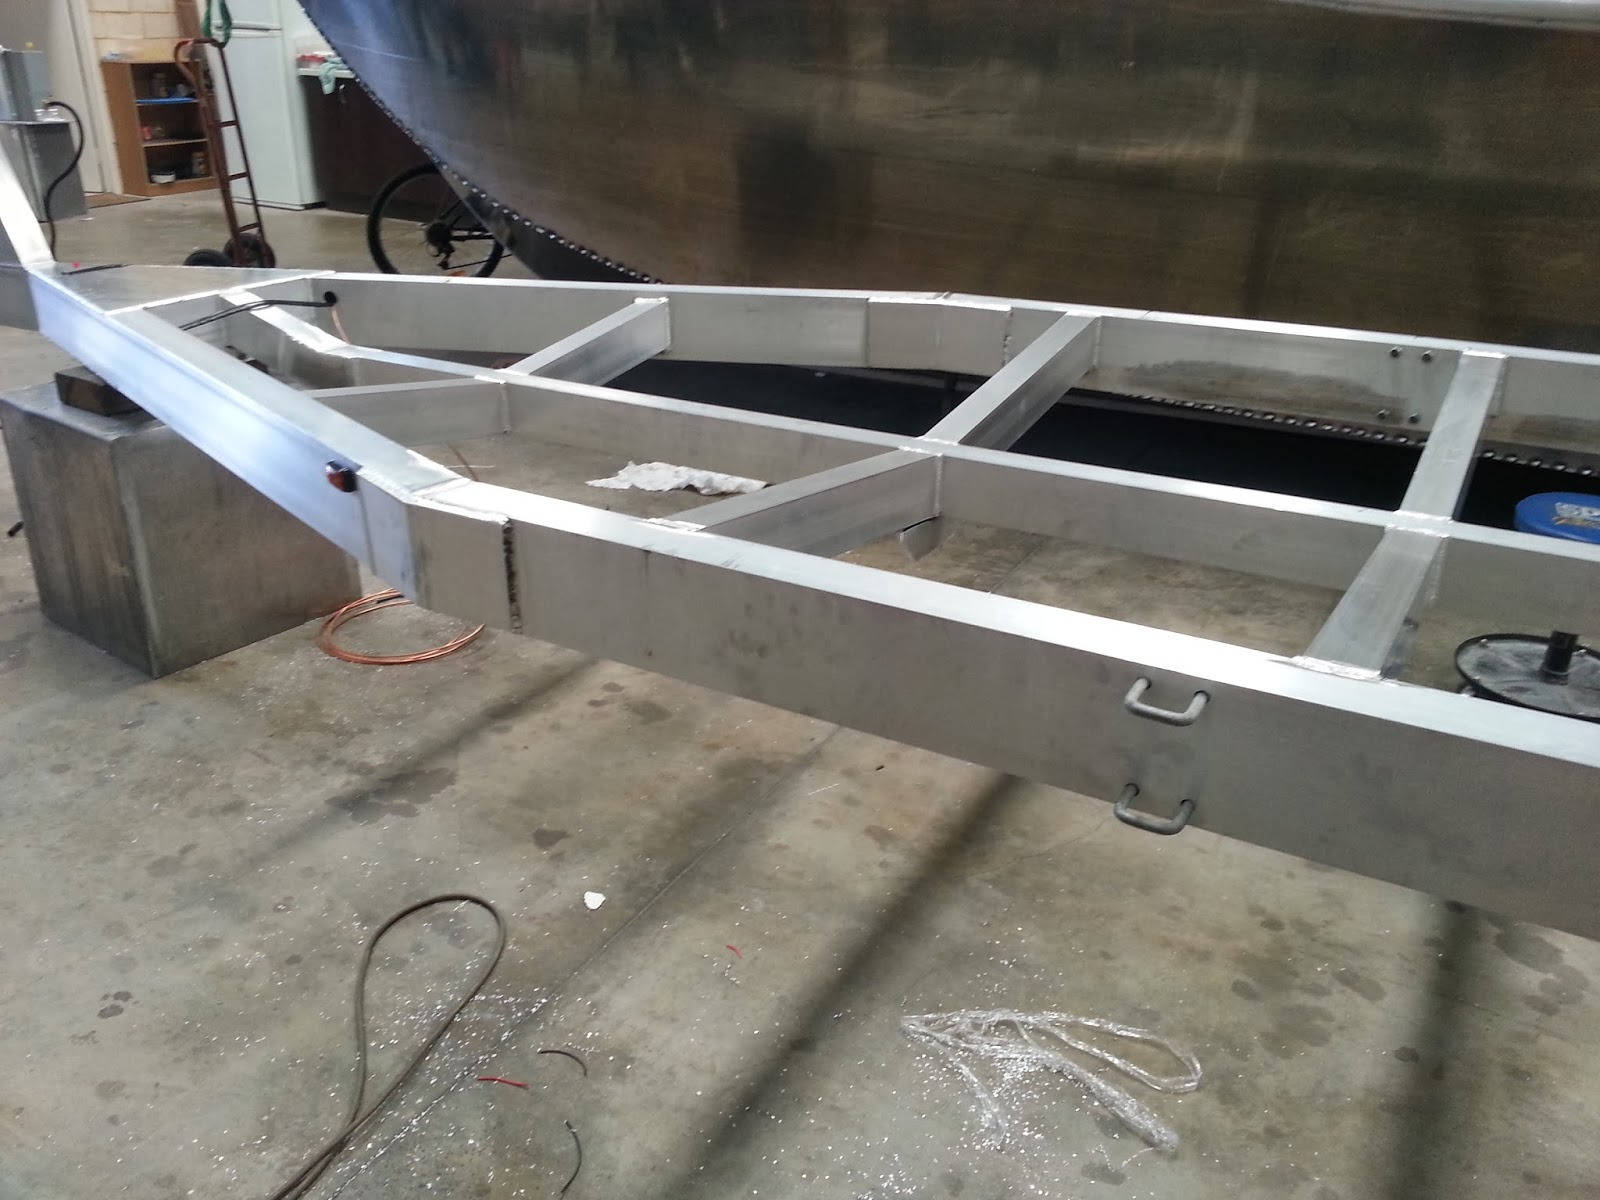 Building an Aluminium Plate Boat: The build starts